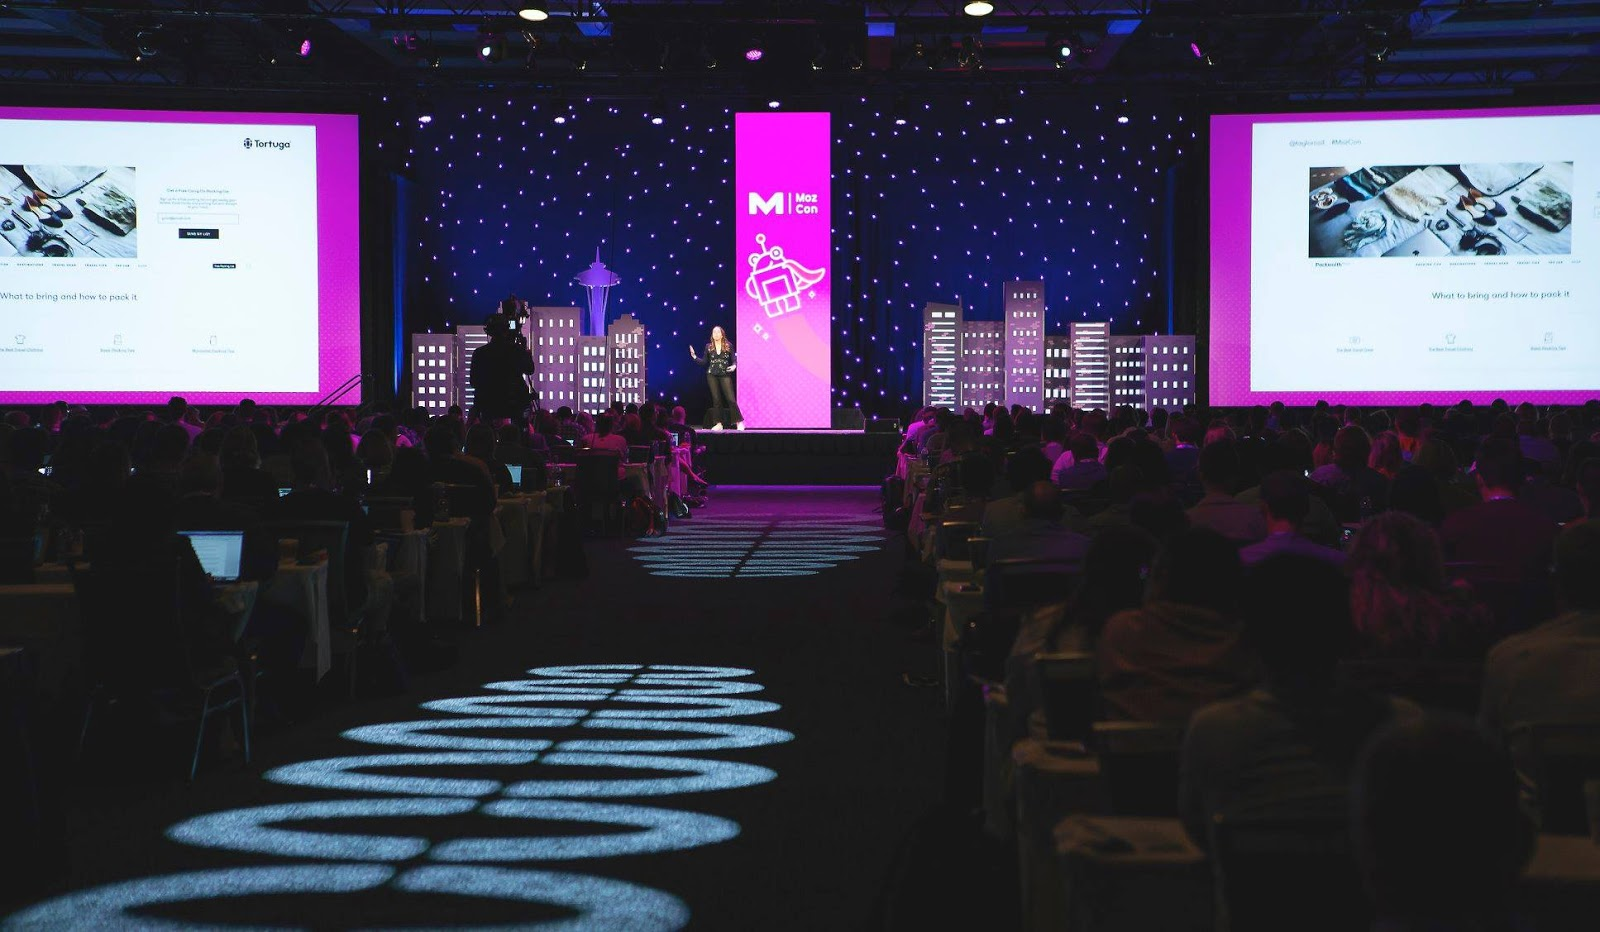 Step into the Spotlight as a Community Speaker at MozCon 2019 1